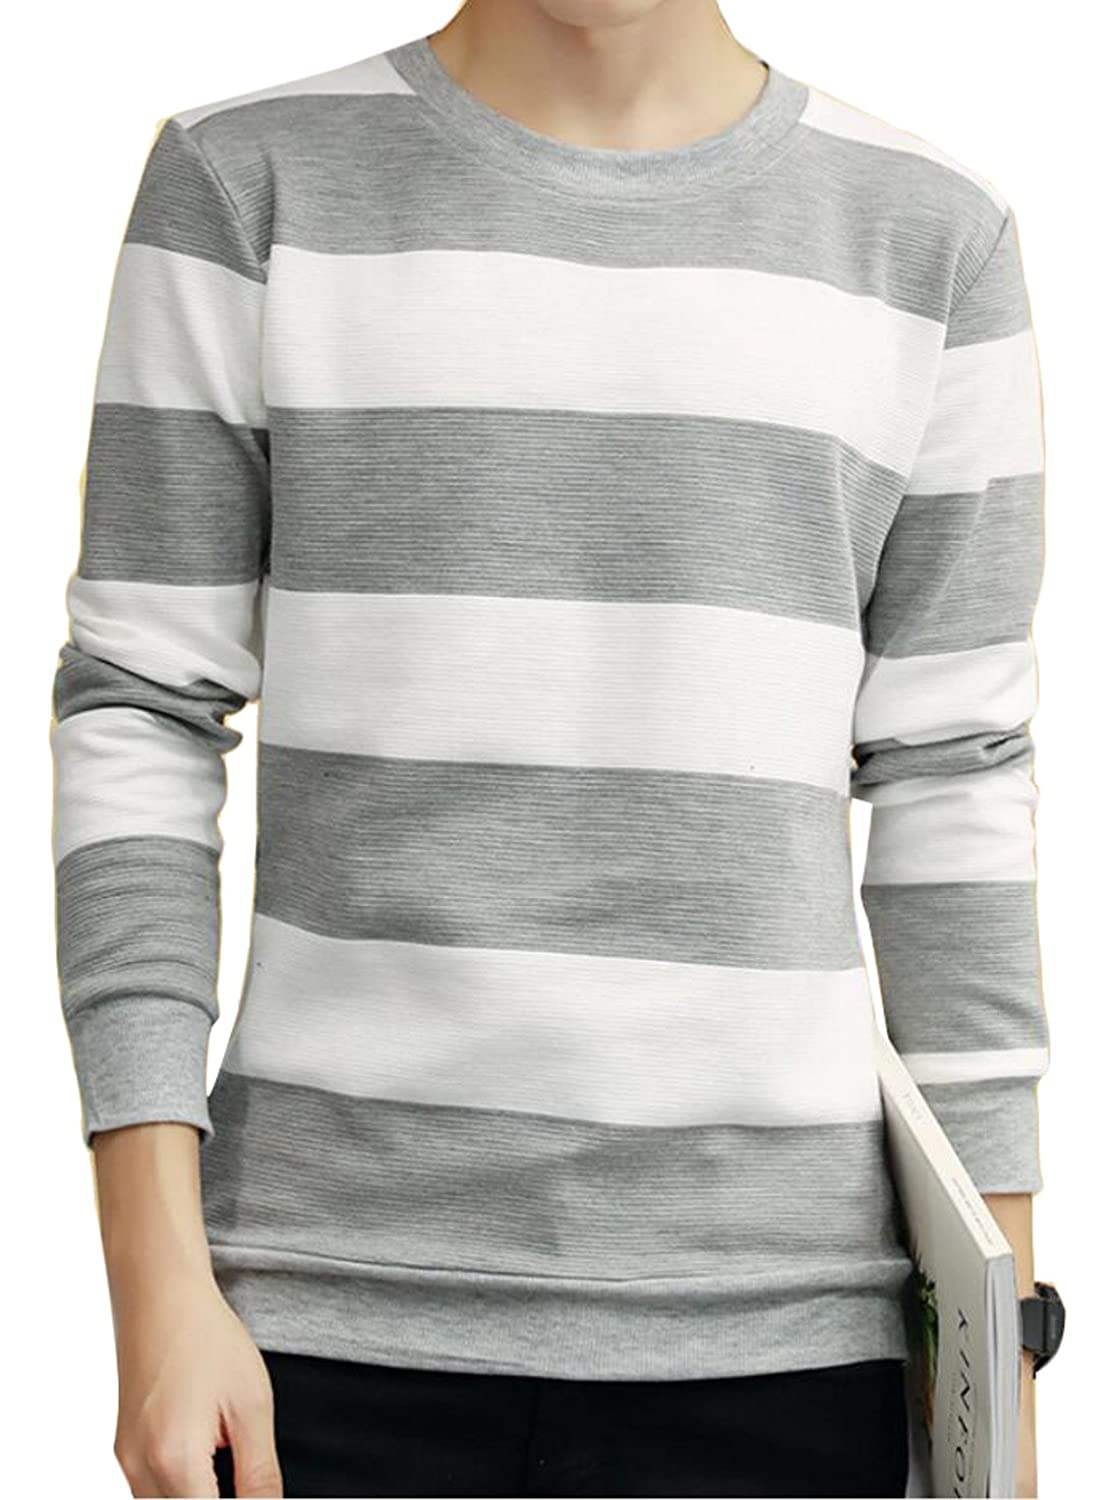 Unko Men's Striped Casual Long-sleeved Pullover T-shirts